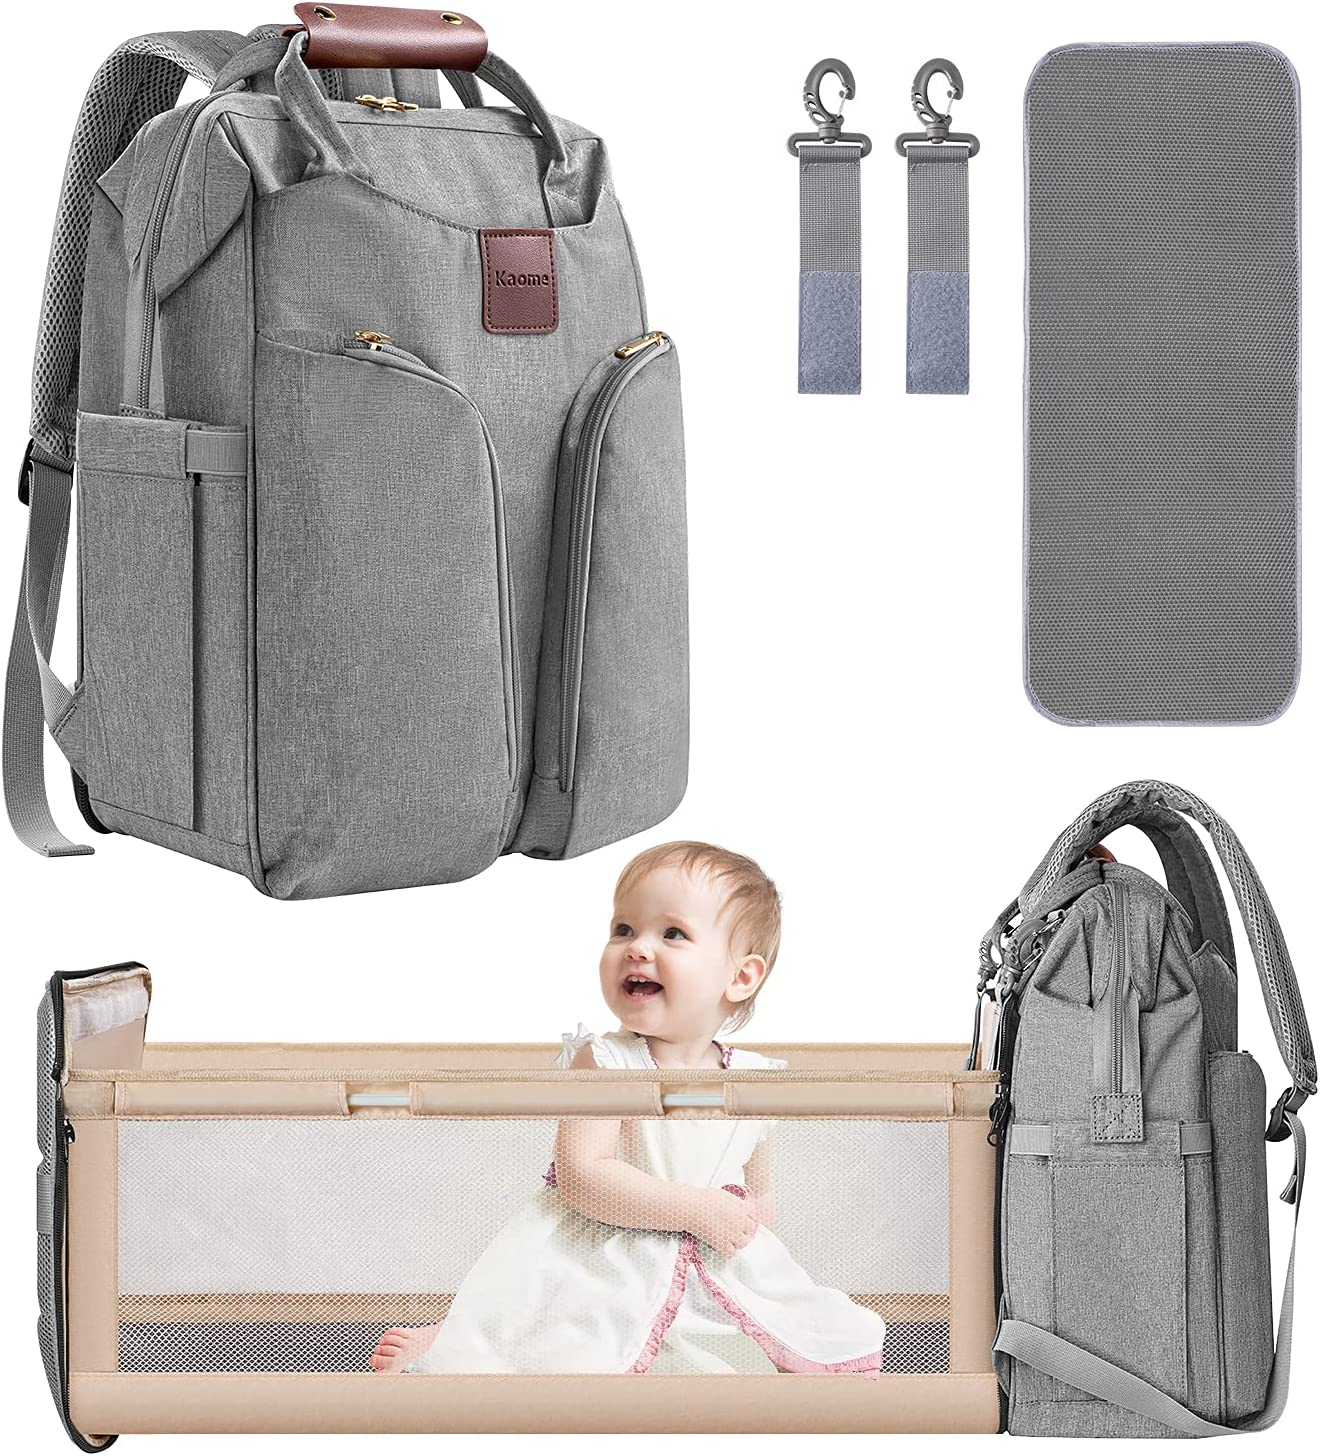 Diaper Bag Backpack, Upgraded Kaome Large Capacity Baby Bags, Multifunction Diaper Bag with Changing Station, Insulated Pockets, Stroller Straps, Waterproof Baby Diaper Bags for Girls Boys Mom Dad